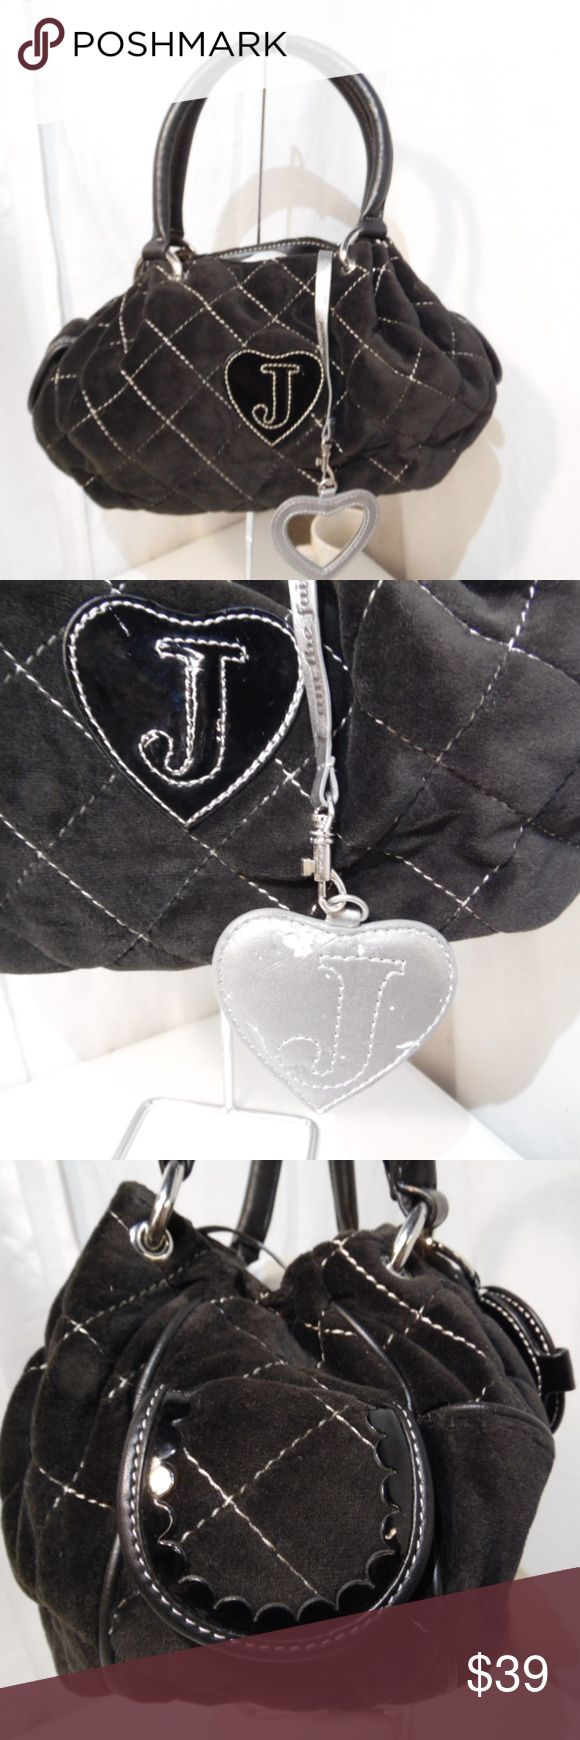 "Juicy Couture Velour/Velvet Satchel hand bag Pre owned  great used condition visible wear/scrape to back of mirror/letter J charm..picture 2 clean inside and out Small size 13"" wide 7"" tall 3"" deep..6"" handle drop. Juicy Couture Bags Satchels"